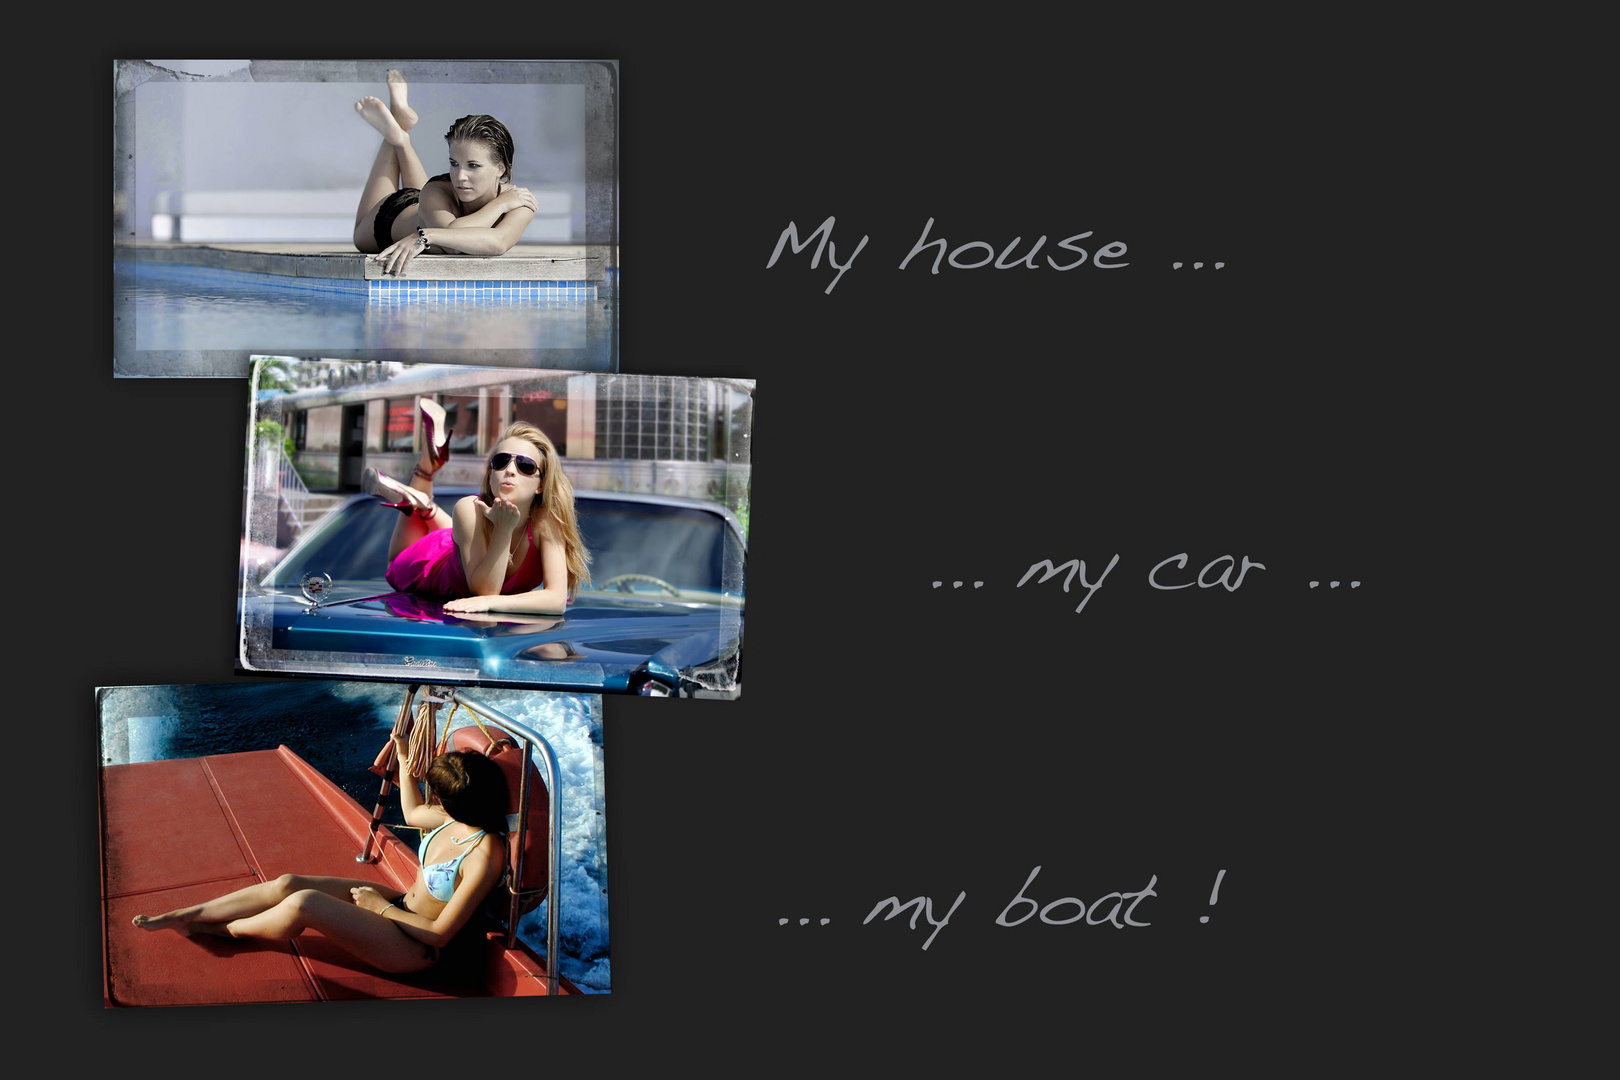 my house, my car, my boat!